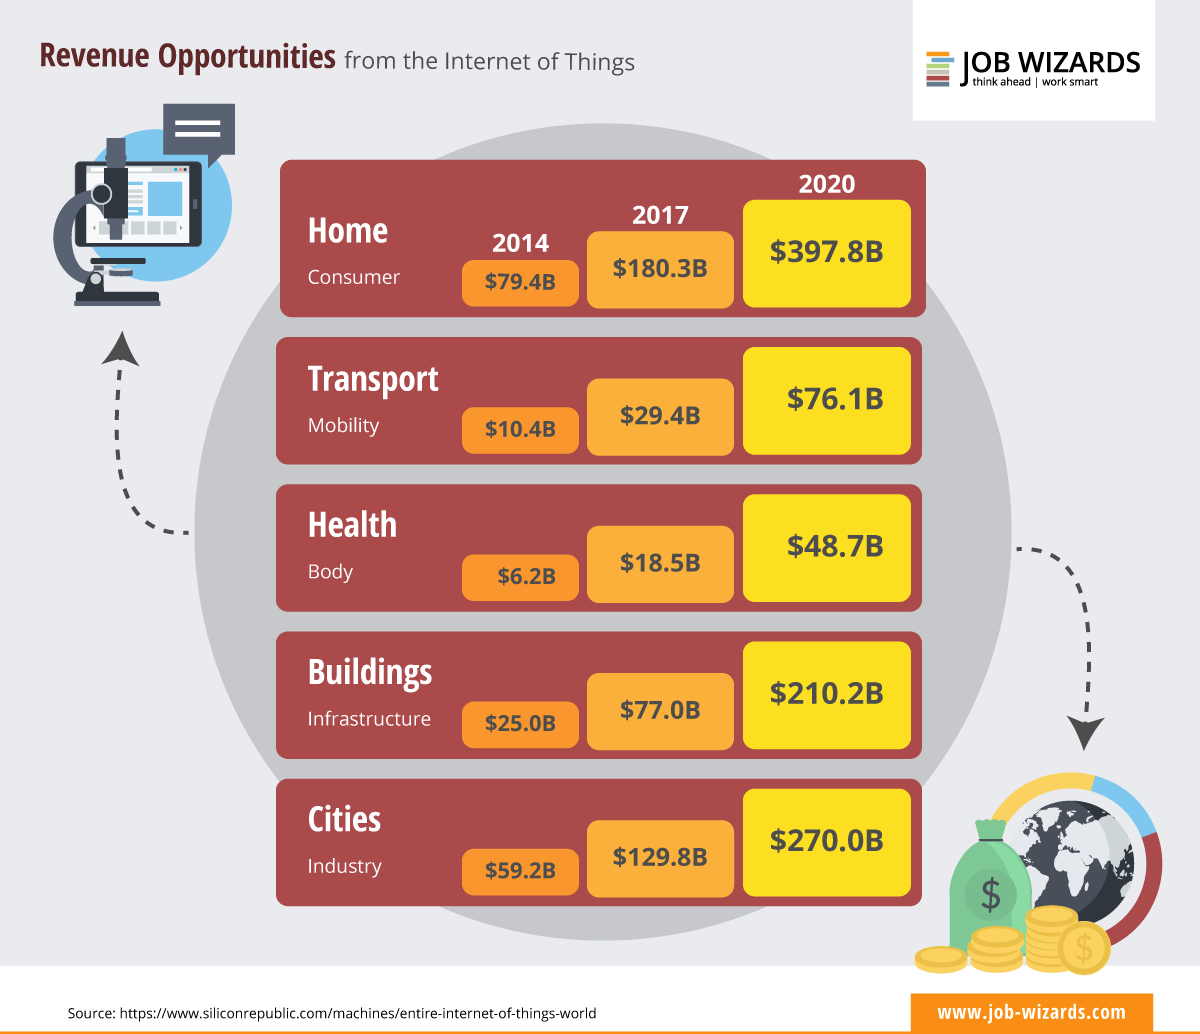 Revenue pportunities from the Internet of things